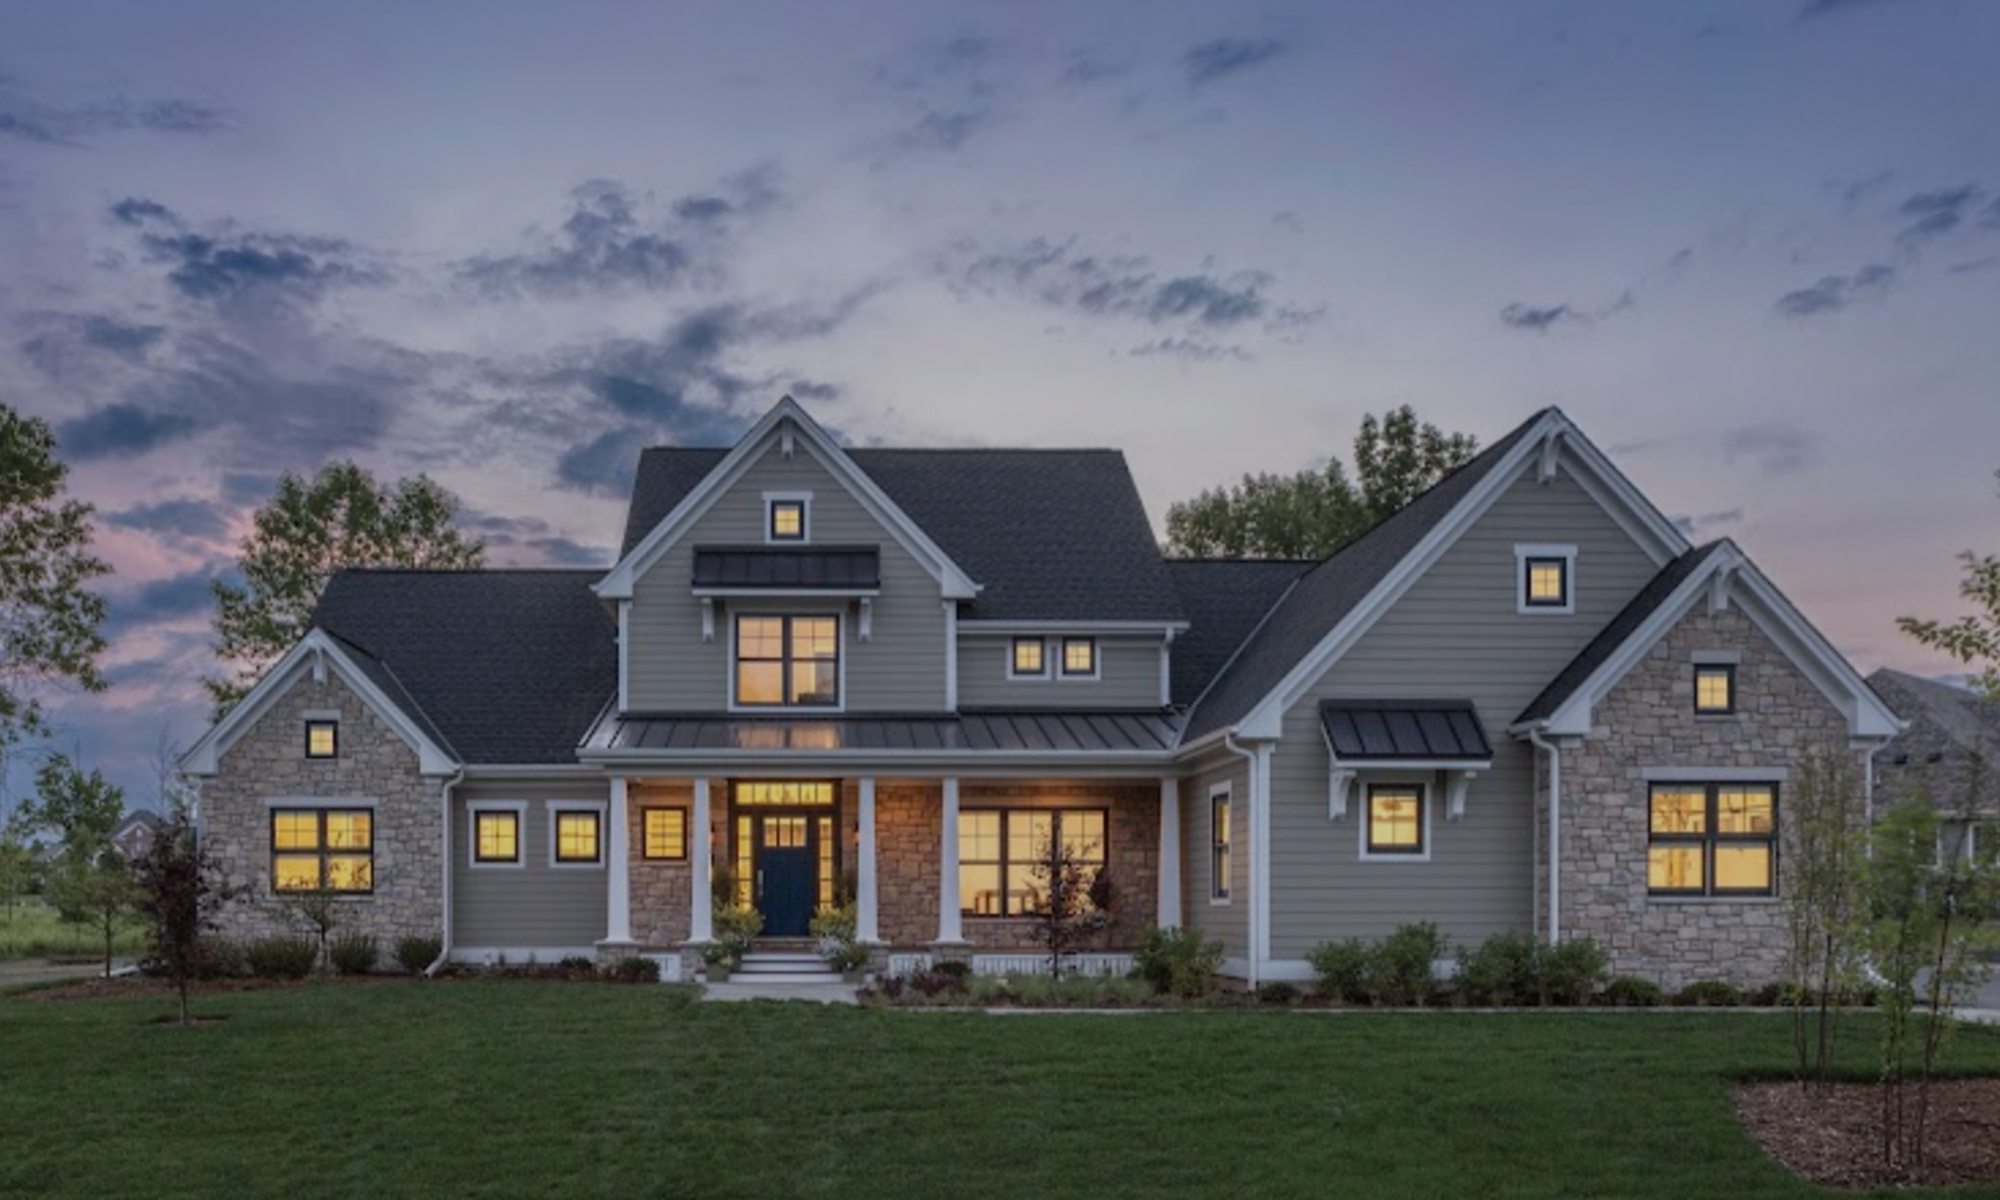 The Popularity of the Craftsman Style